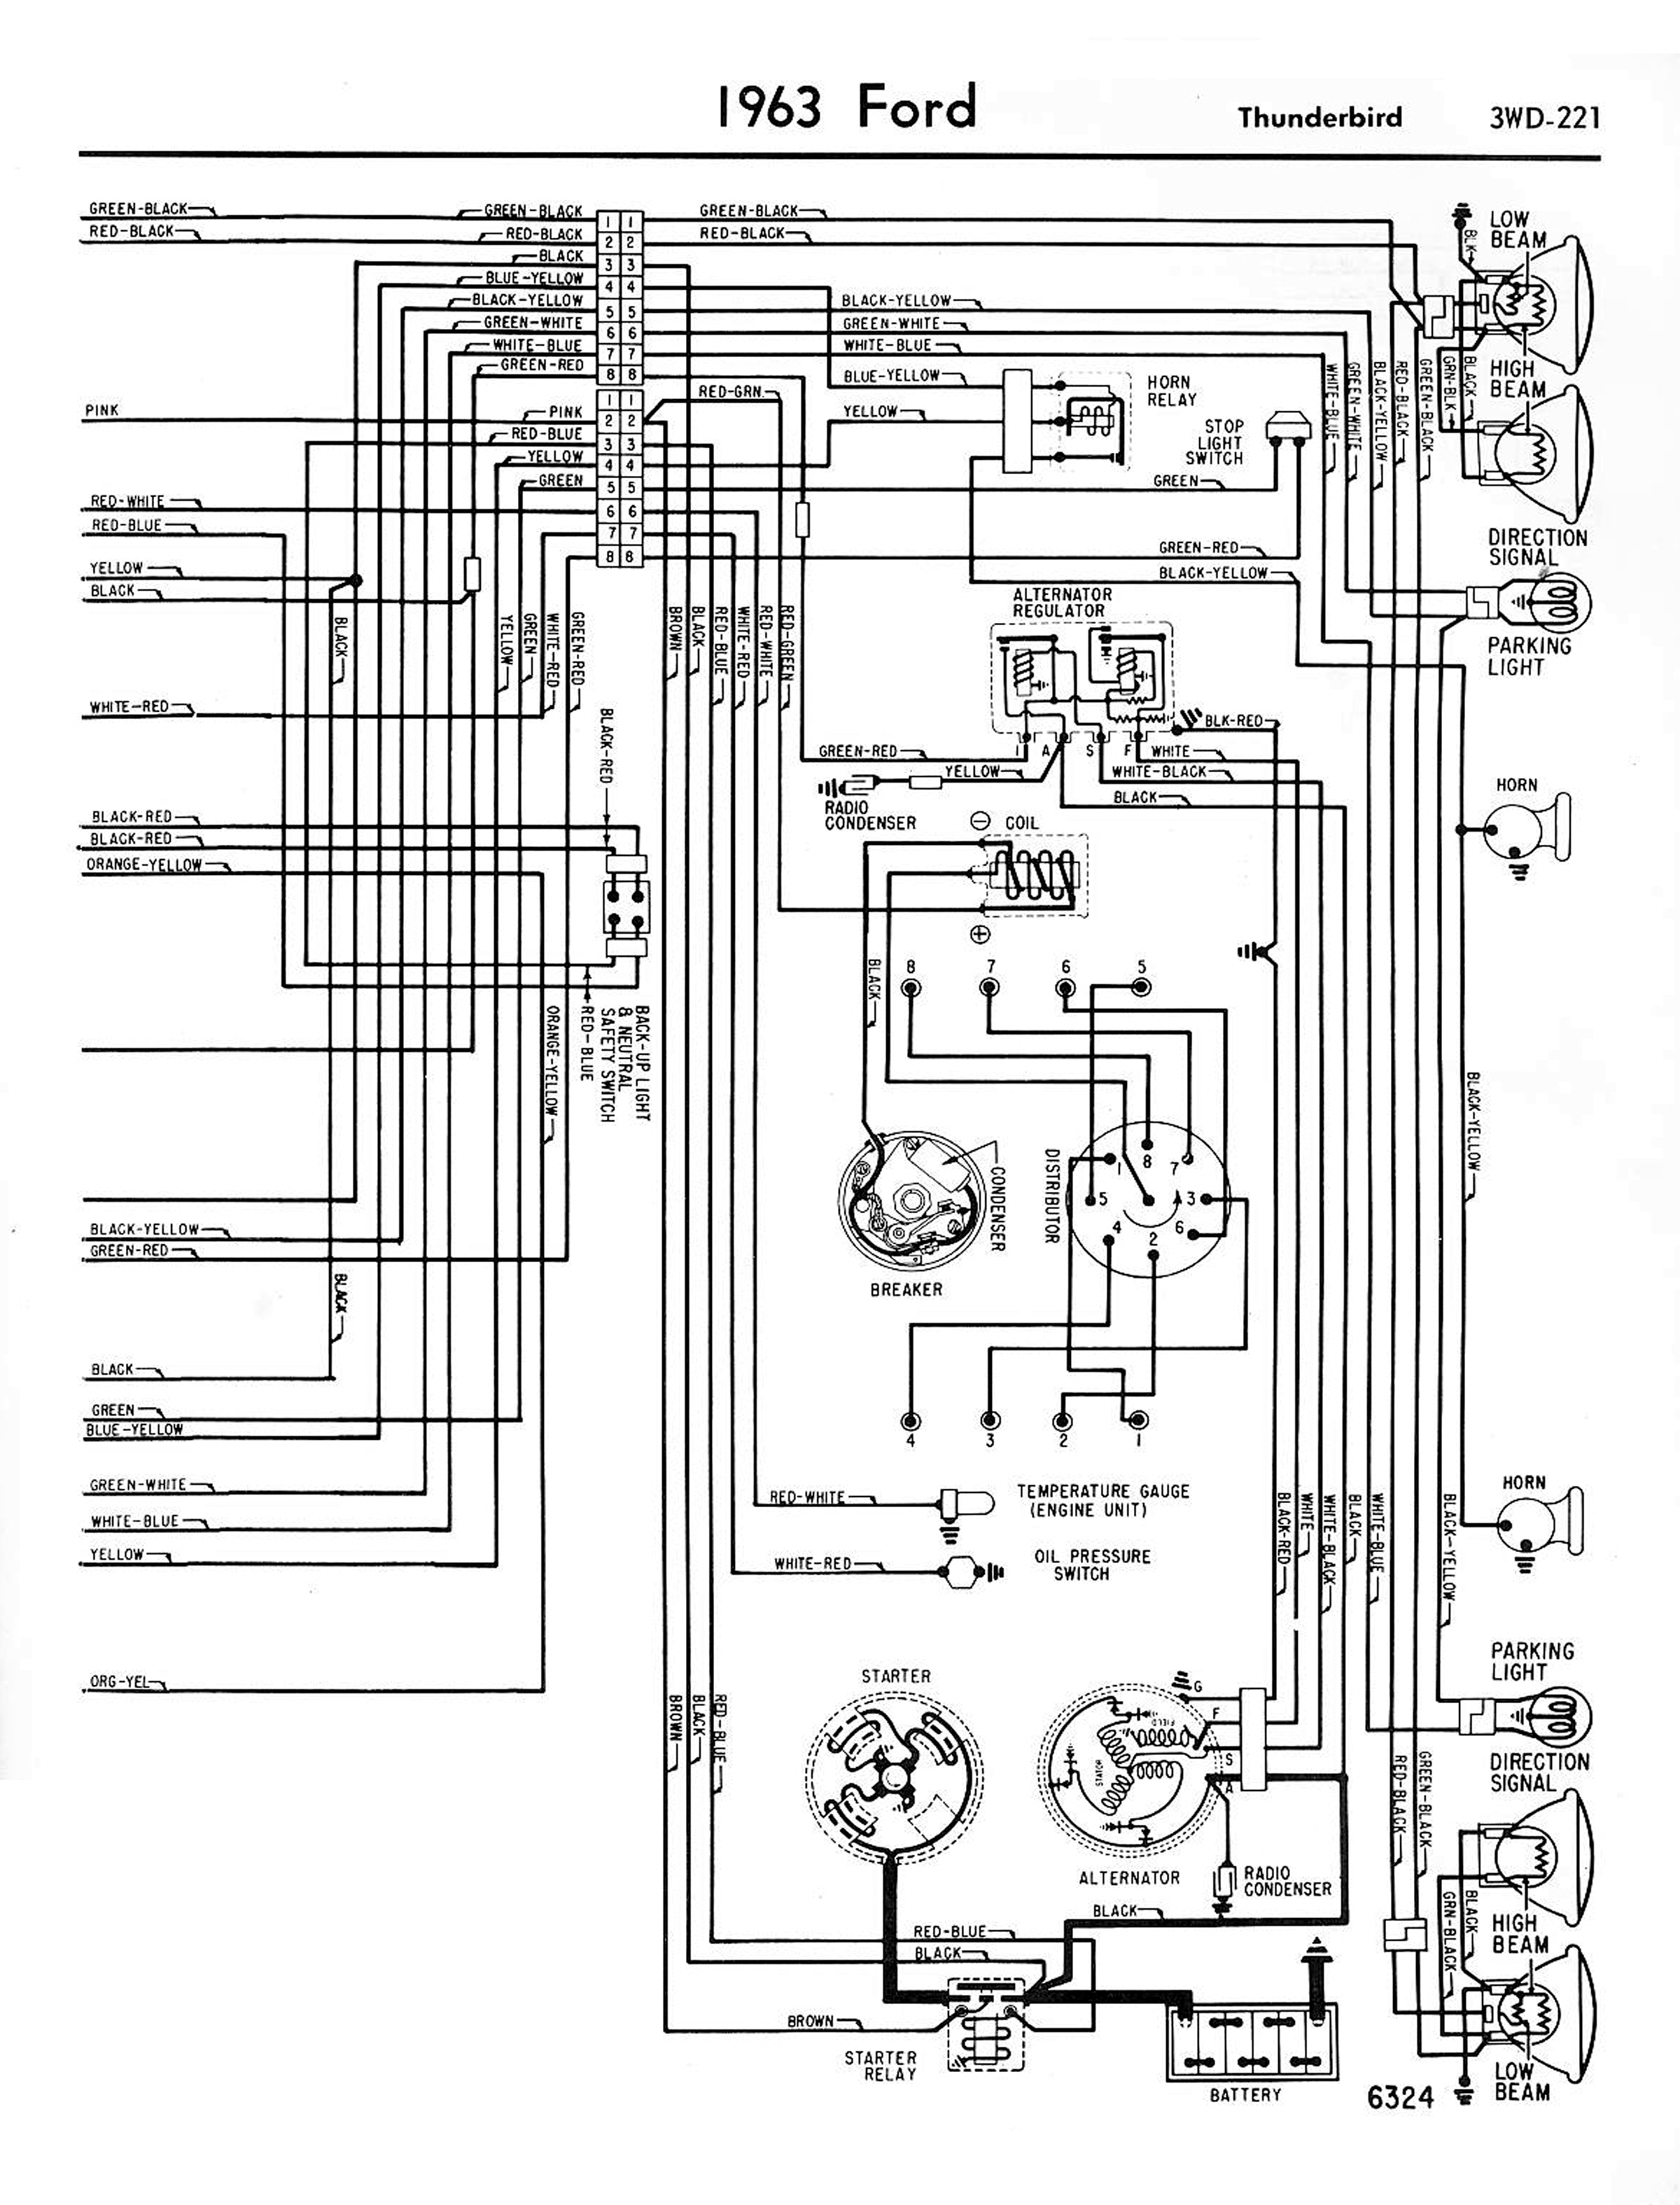 66 Ford Fairlane Wiring Diagrams Regulator Diagram Libraries 1976 Mustang Radio 1963 Libraryflarebird Vacuum